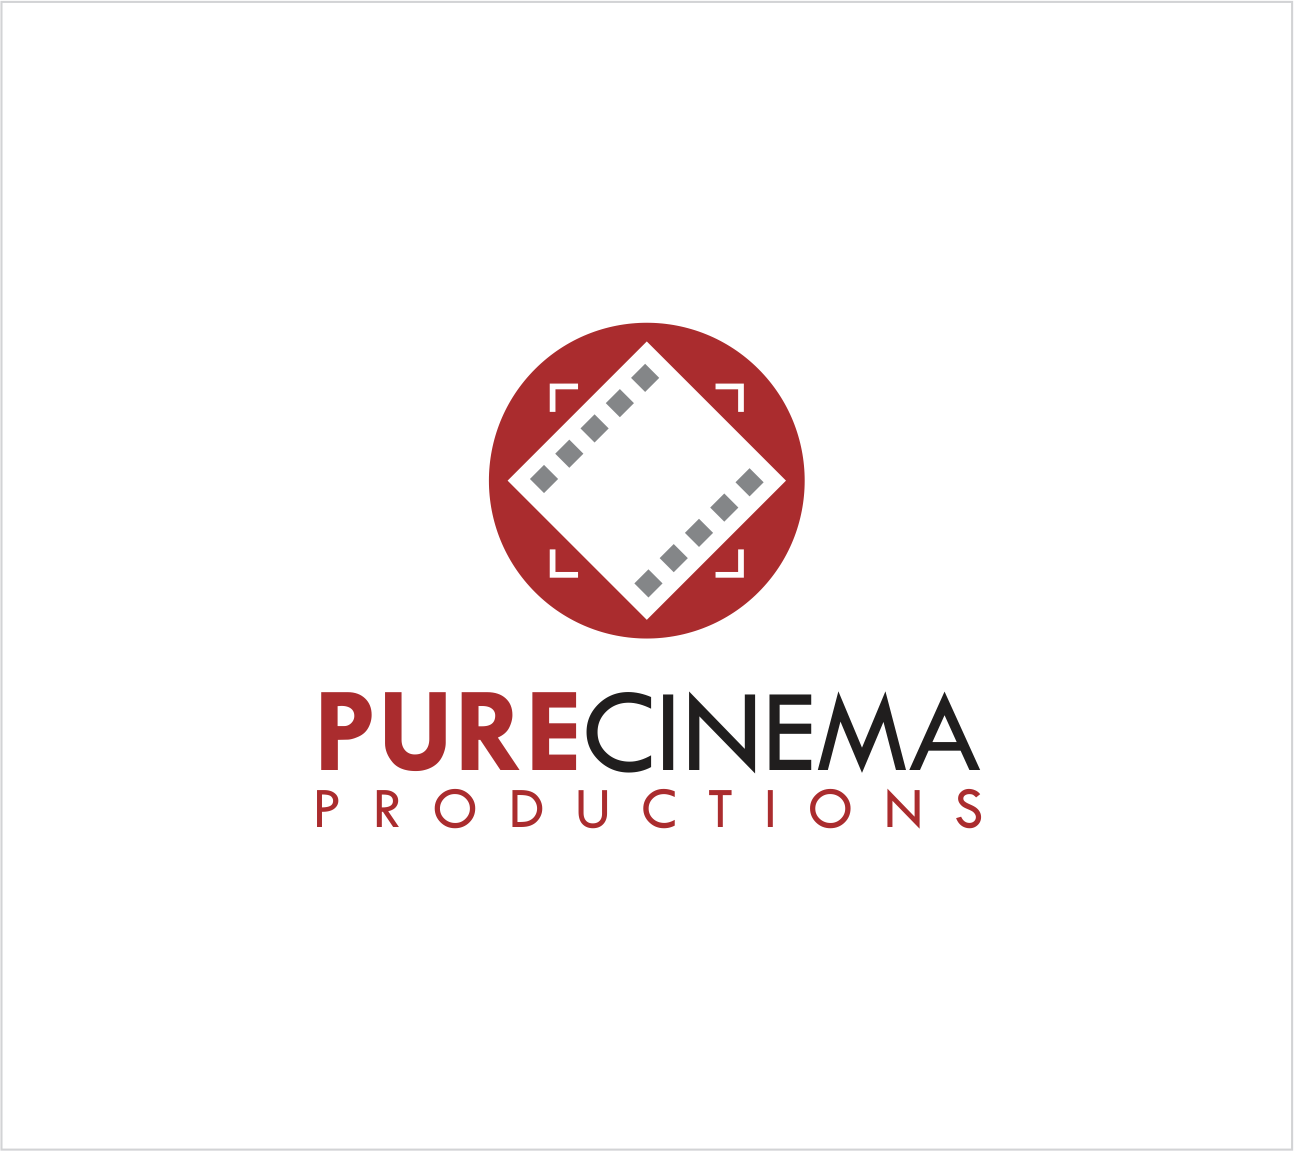 Logo Design by Armada Jamaluddin - Entry No. 25 in the Logo Design Contest Imaginative Logo Design for Pure Cinema.